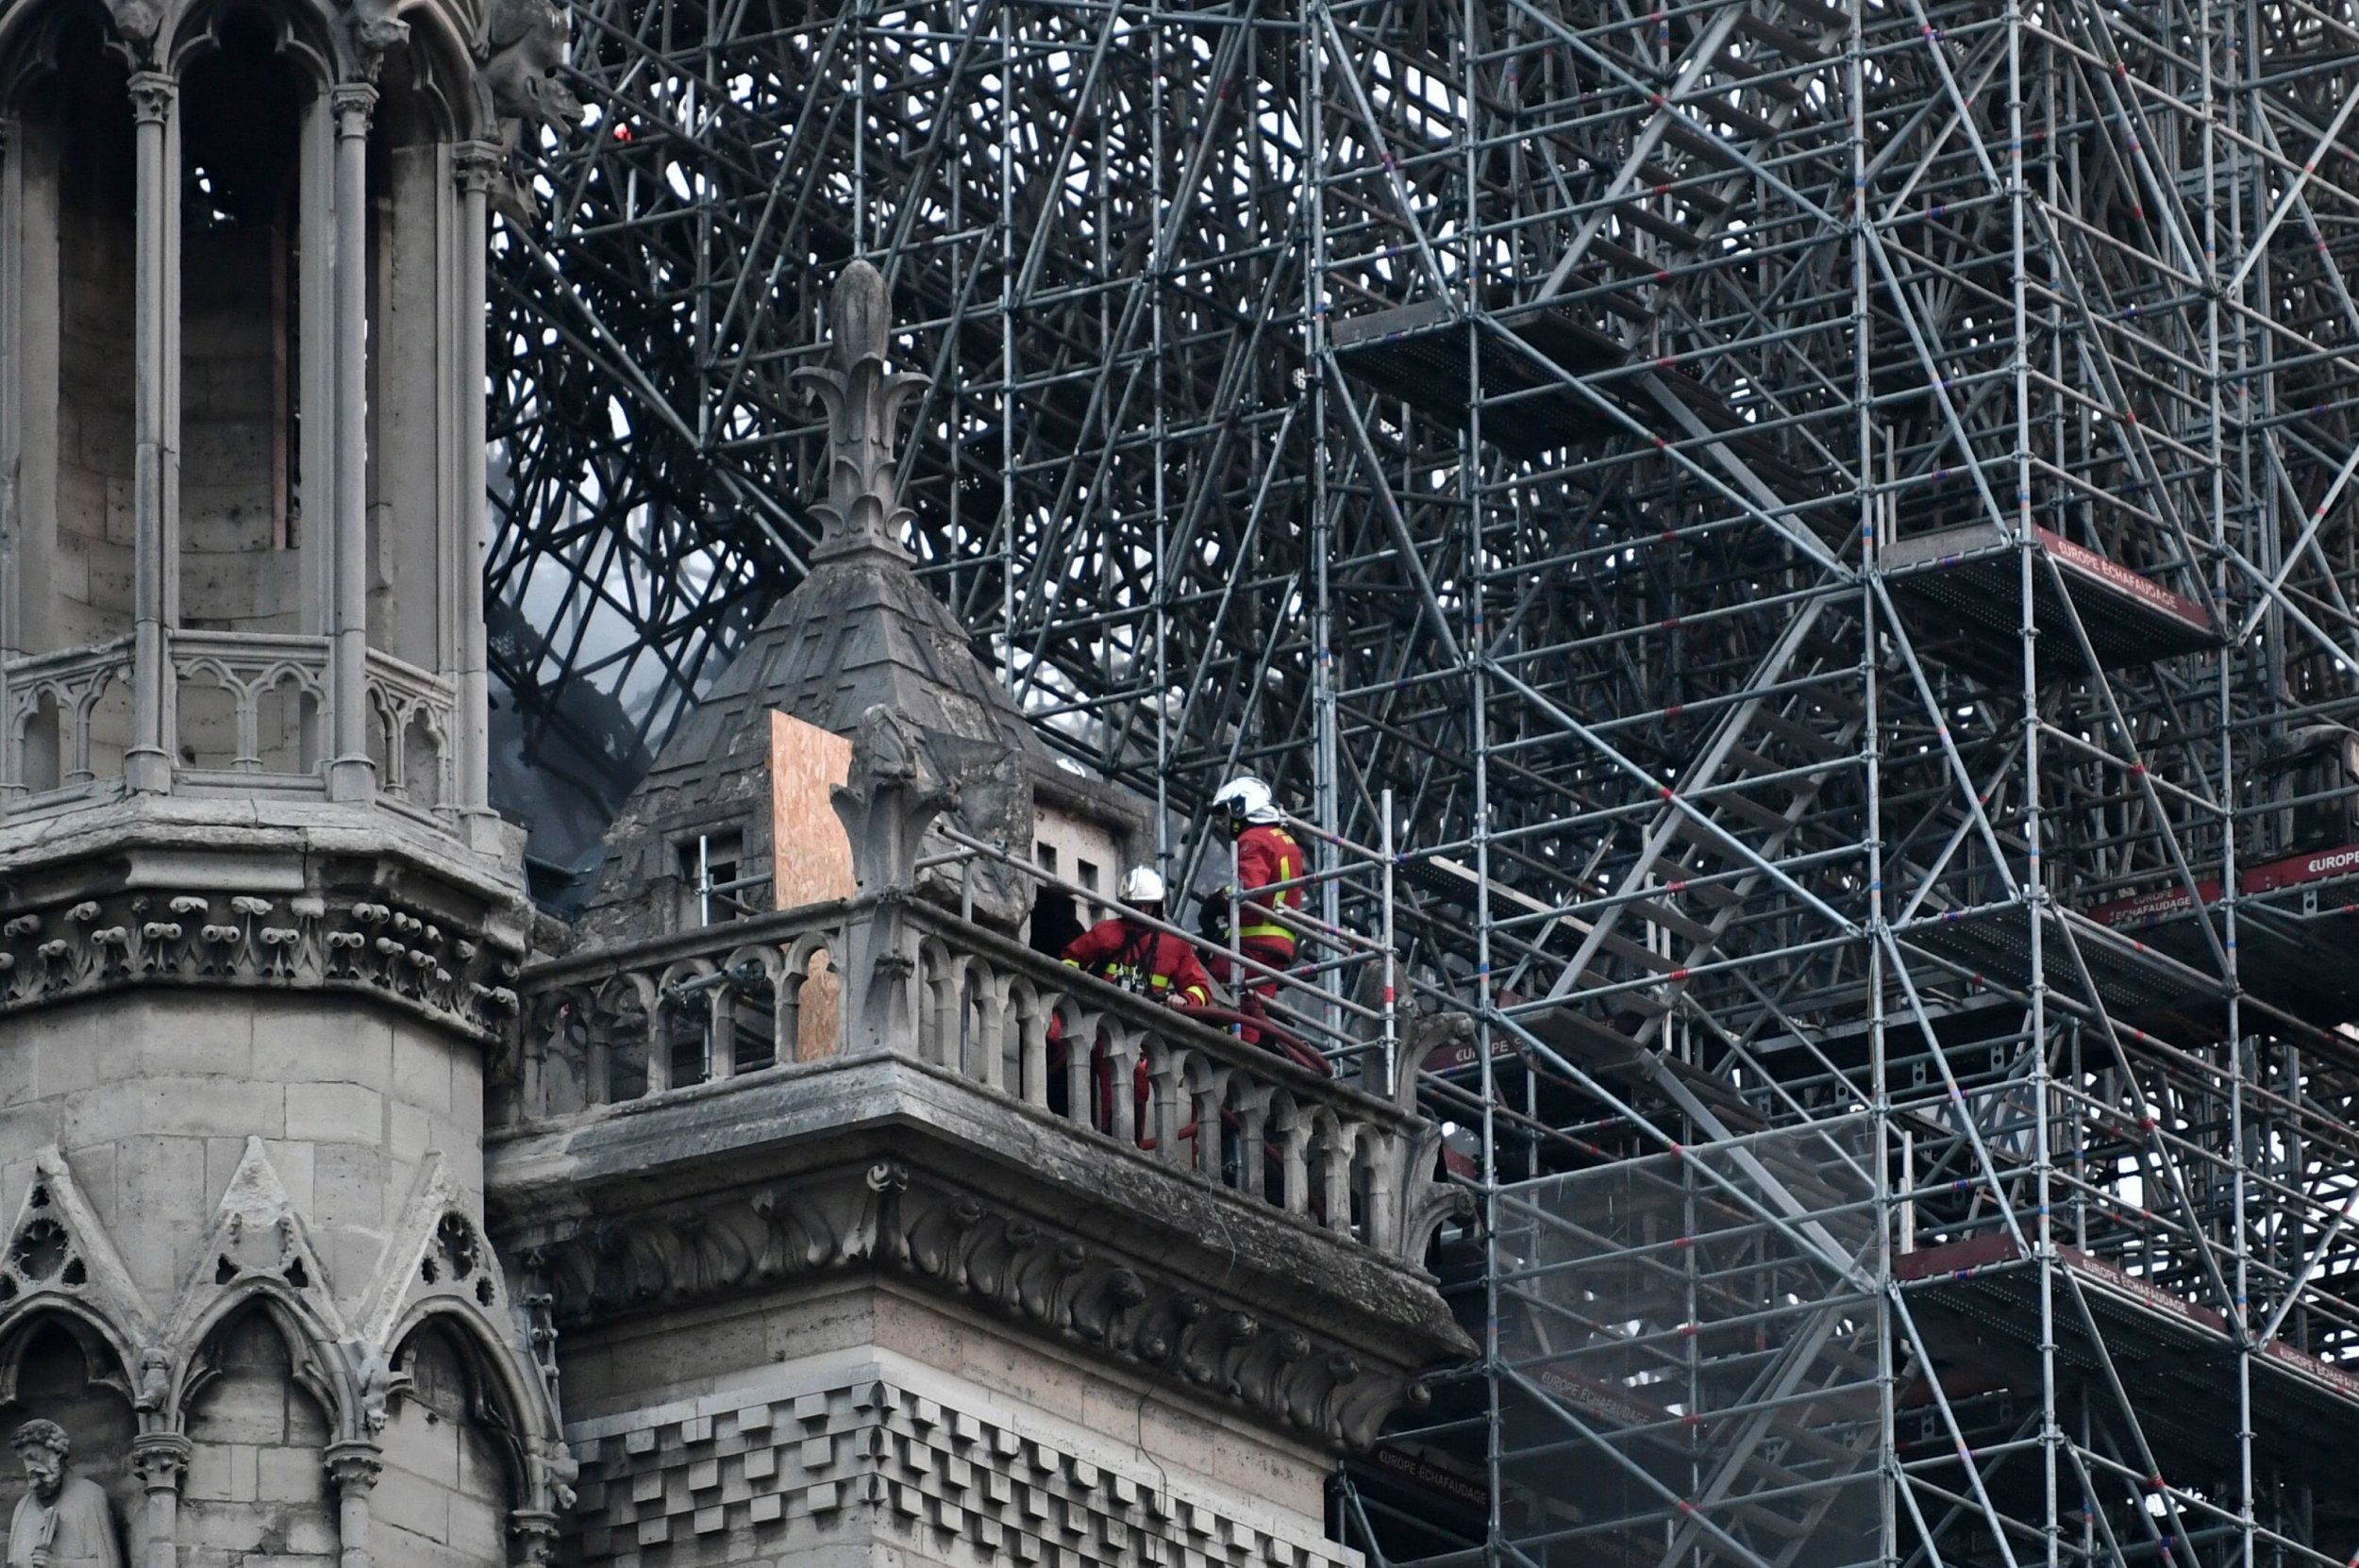 "Firefighters work to extinguish a fire at Notre-Dame Cathedral in Paris early on April 16, 2019. - A huge fire that devastated Notre-Dame Cathedral is ""under control"", the Paris fire brigade said early on April 16 after firefighters spent hours battling the flames. (Photo by STEPHANE DE SAKUTIN / AFP)STEPHANE DE SAKUTIN/AFP/Getty Images"